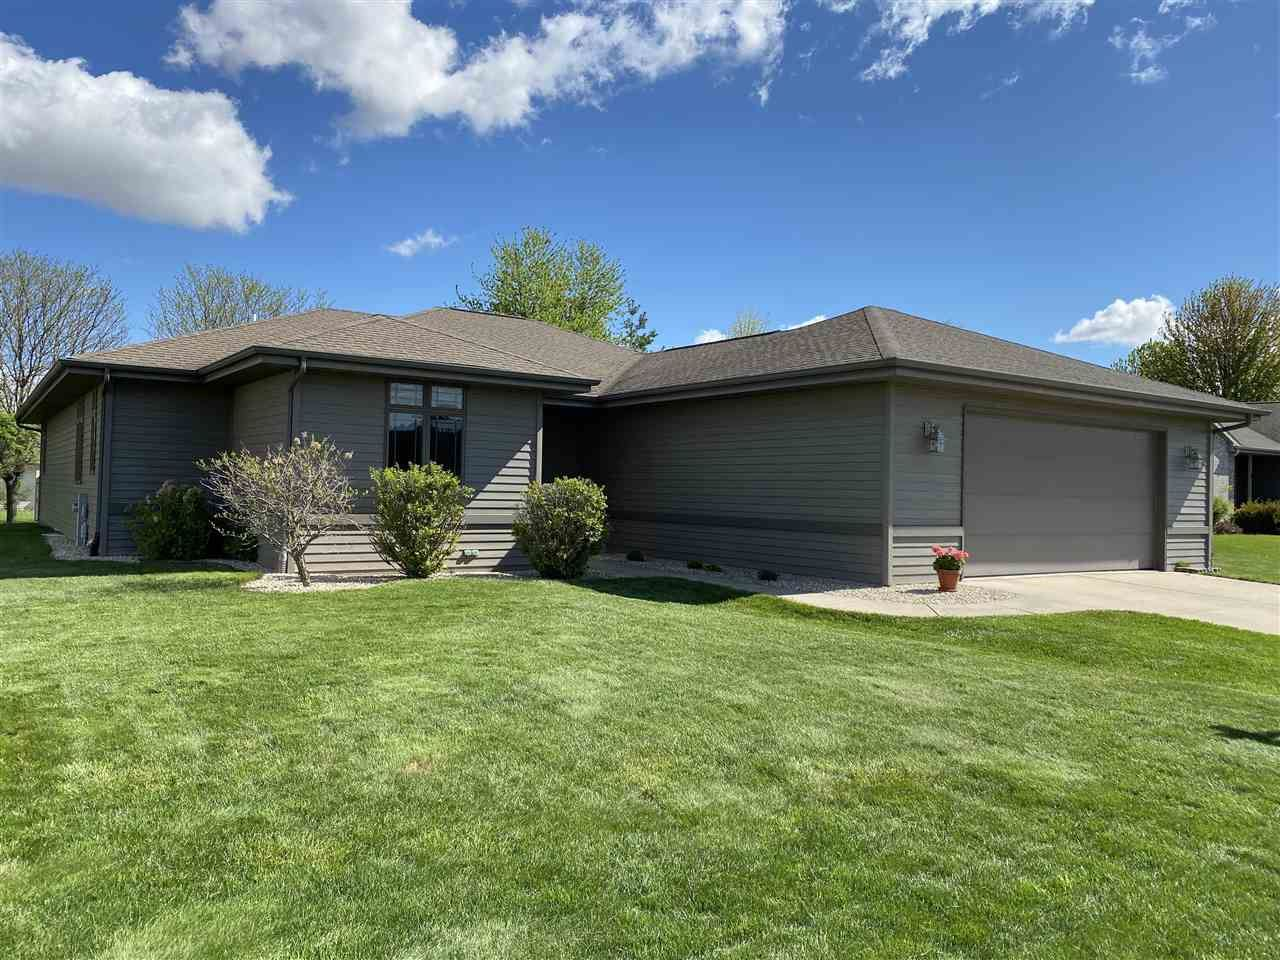 4129 Huntington Ave, Janesville, WI 53546 - MLS#: 1908442